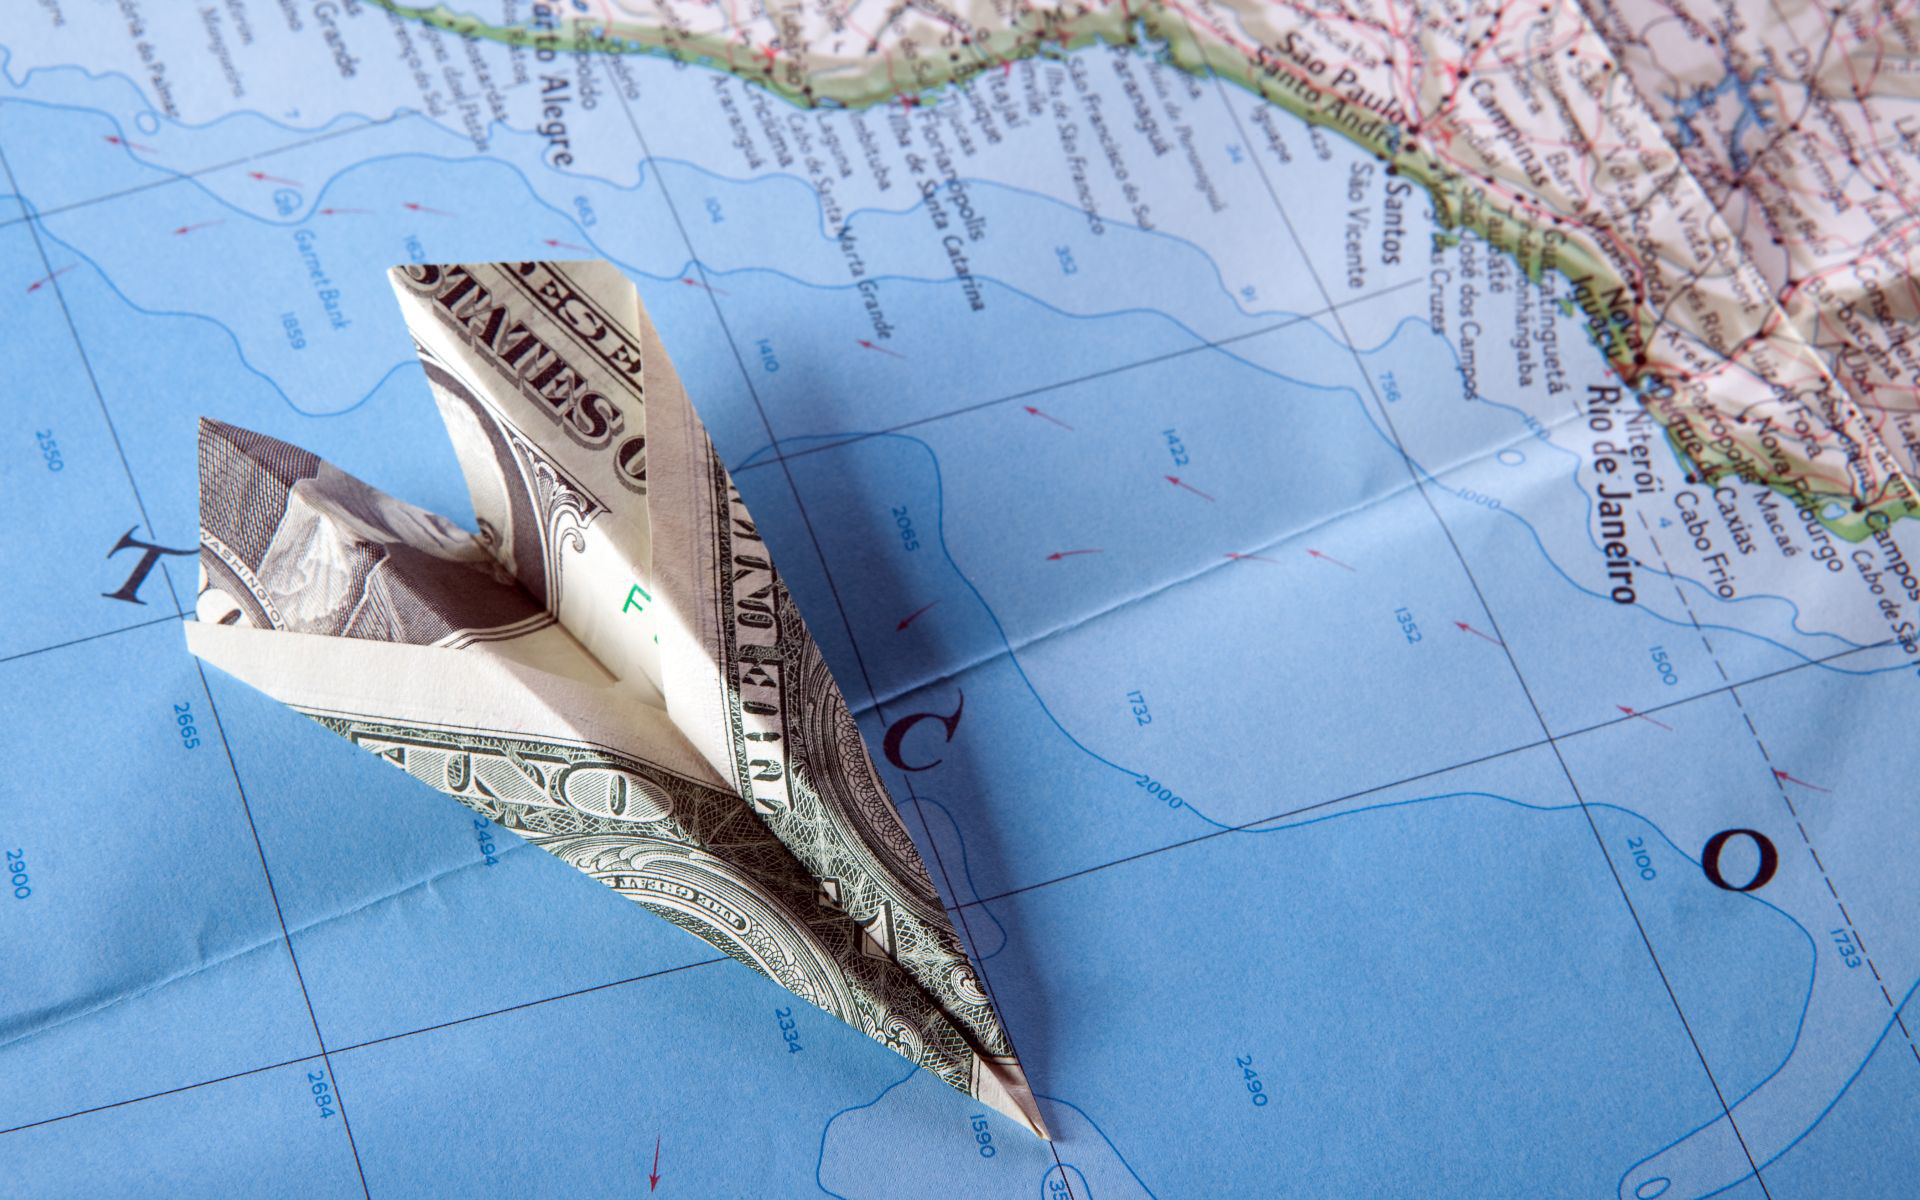 HOW TO SEND MONEY ABROAD: A FEW NOTABLE METHODS